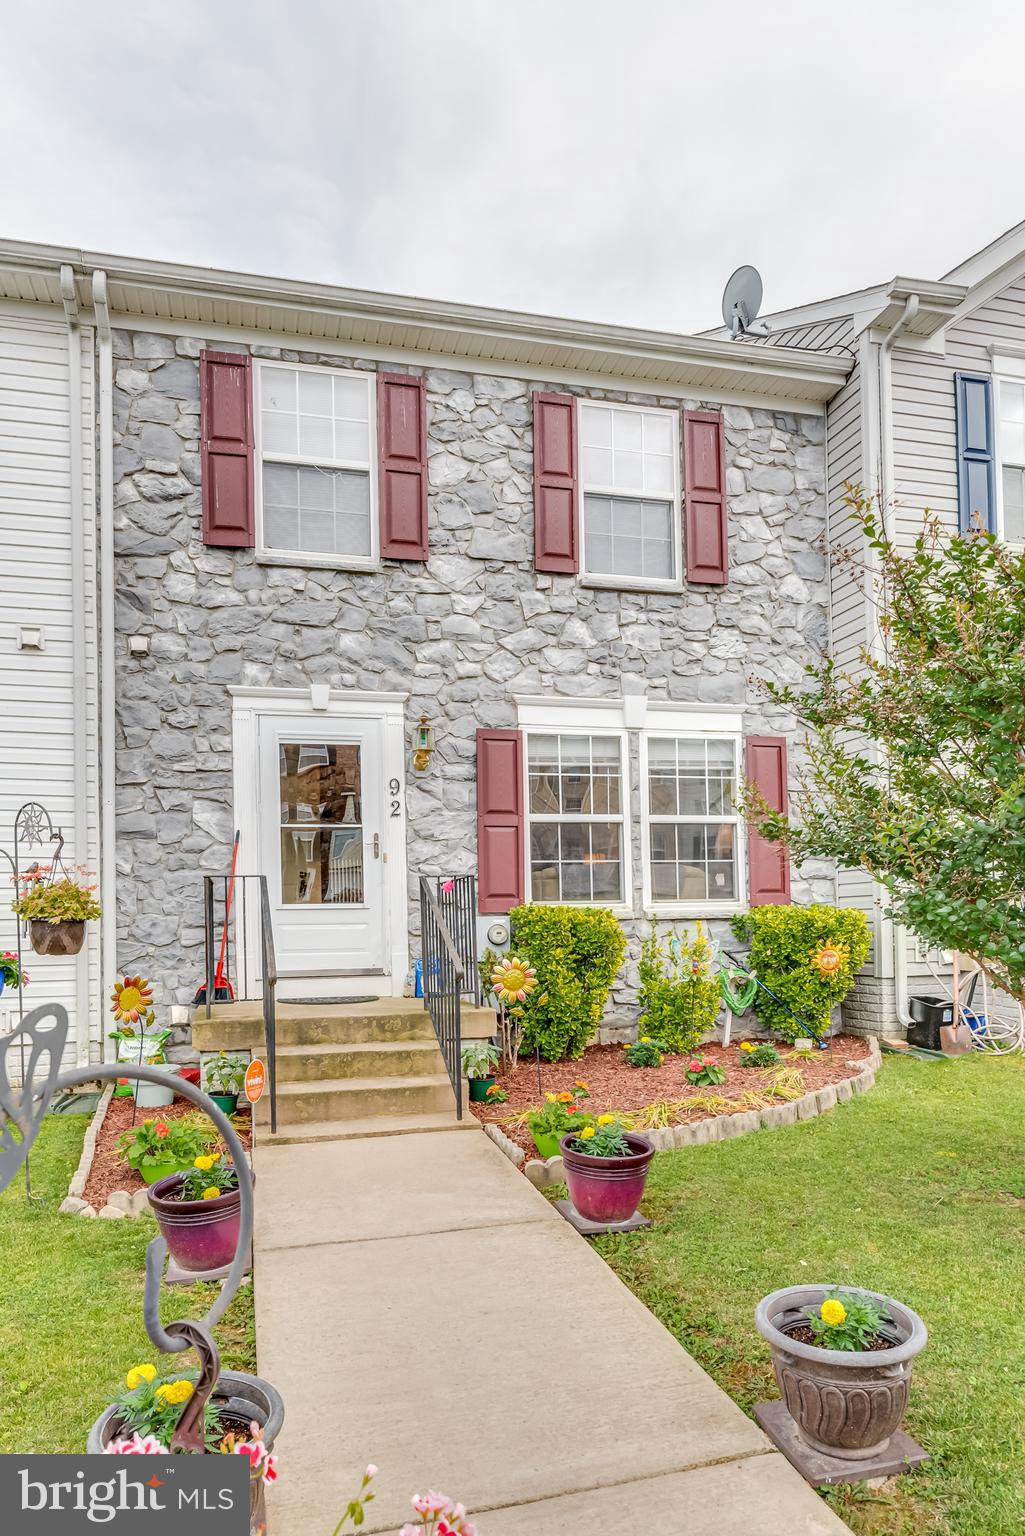 3 Bedroom, 3.5 bath home with partial finished basement. Can be easily converted into a 4th bedroom.